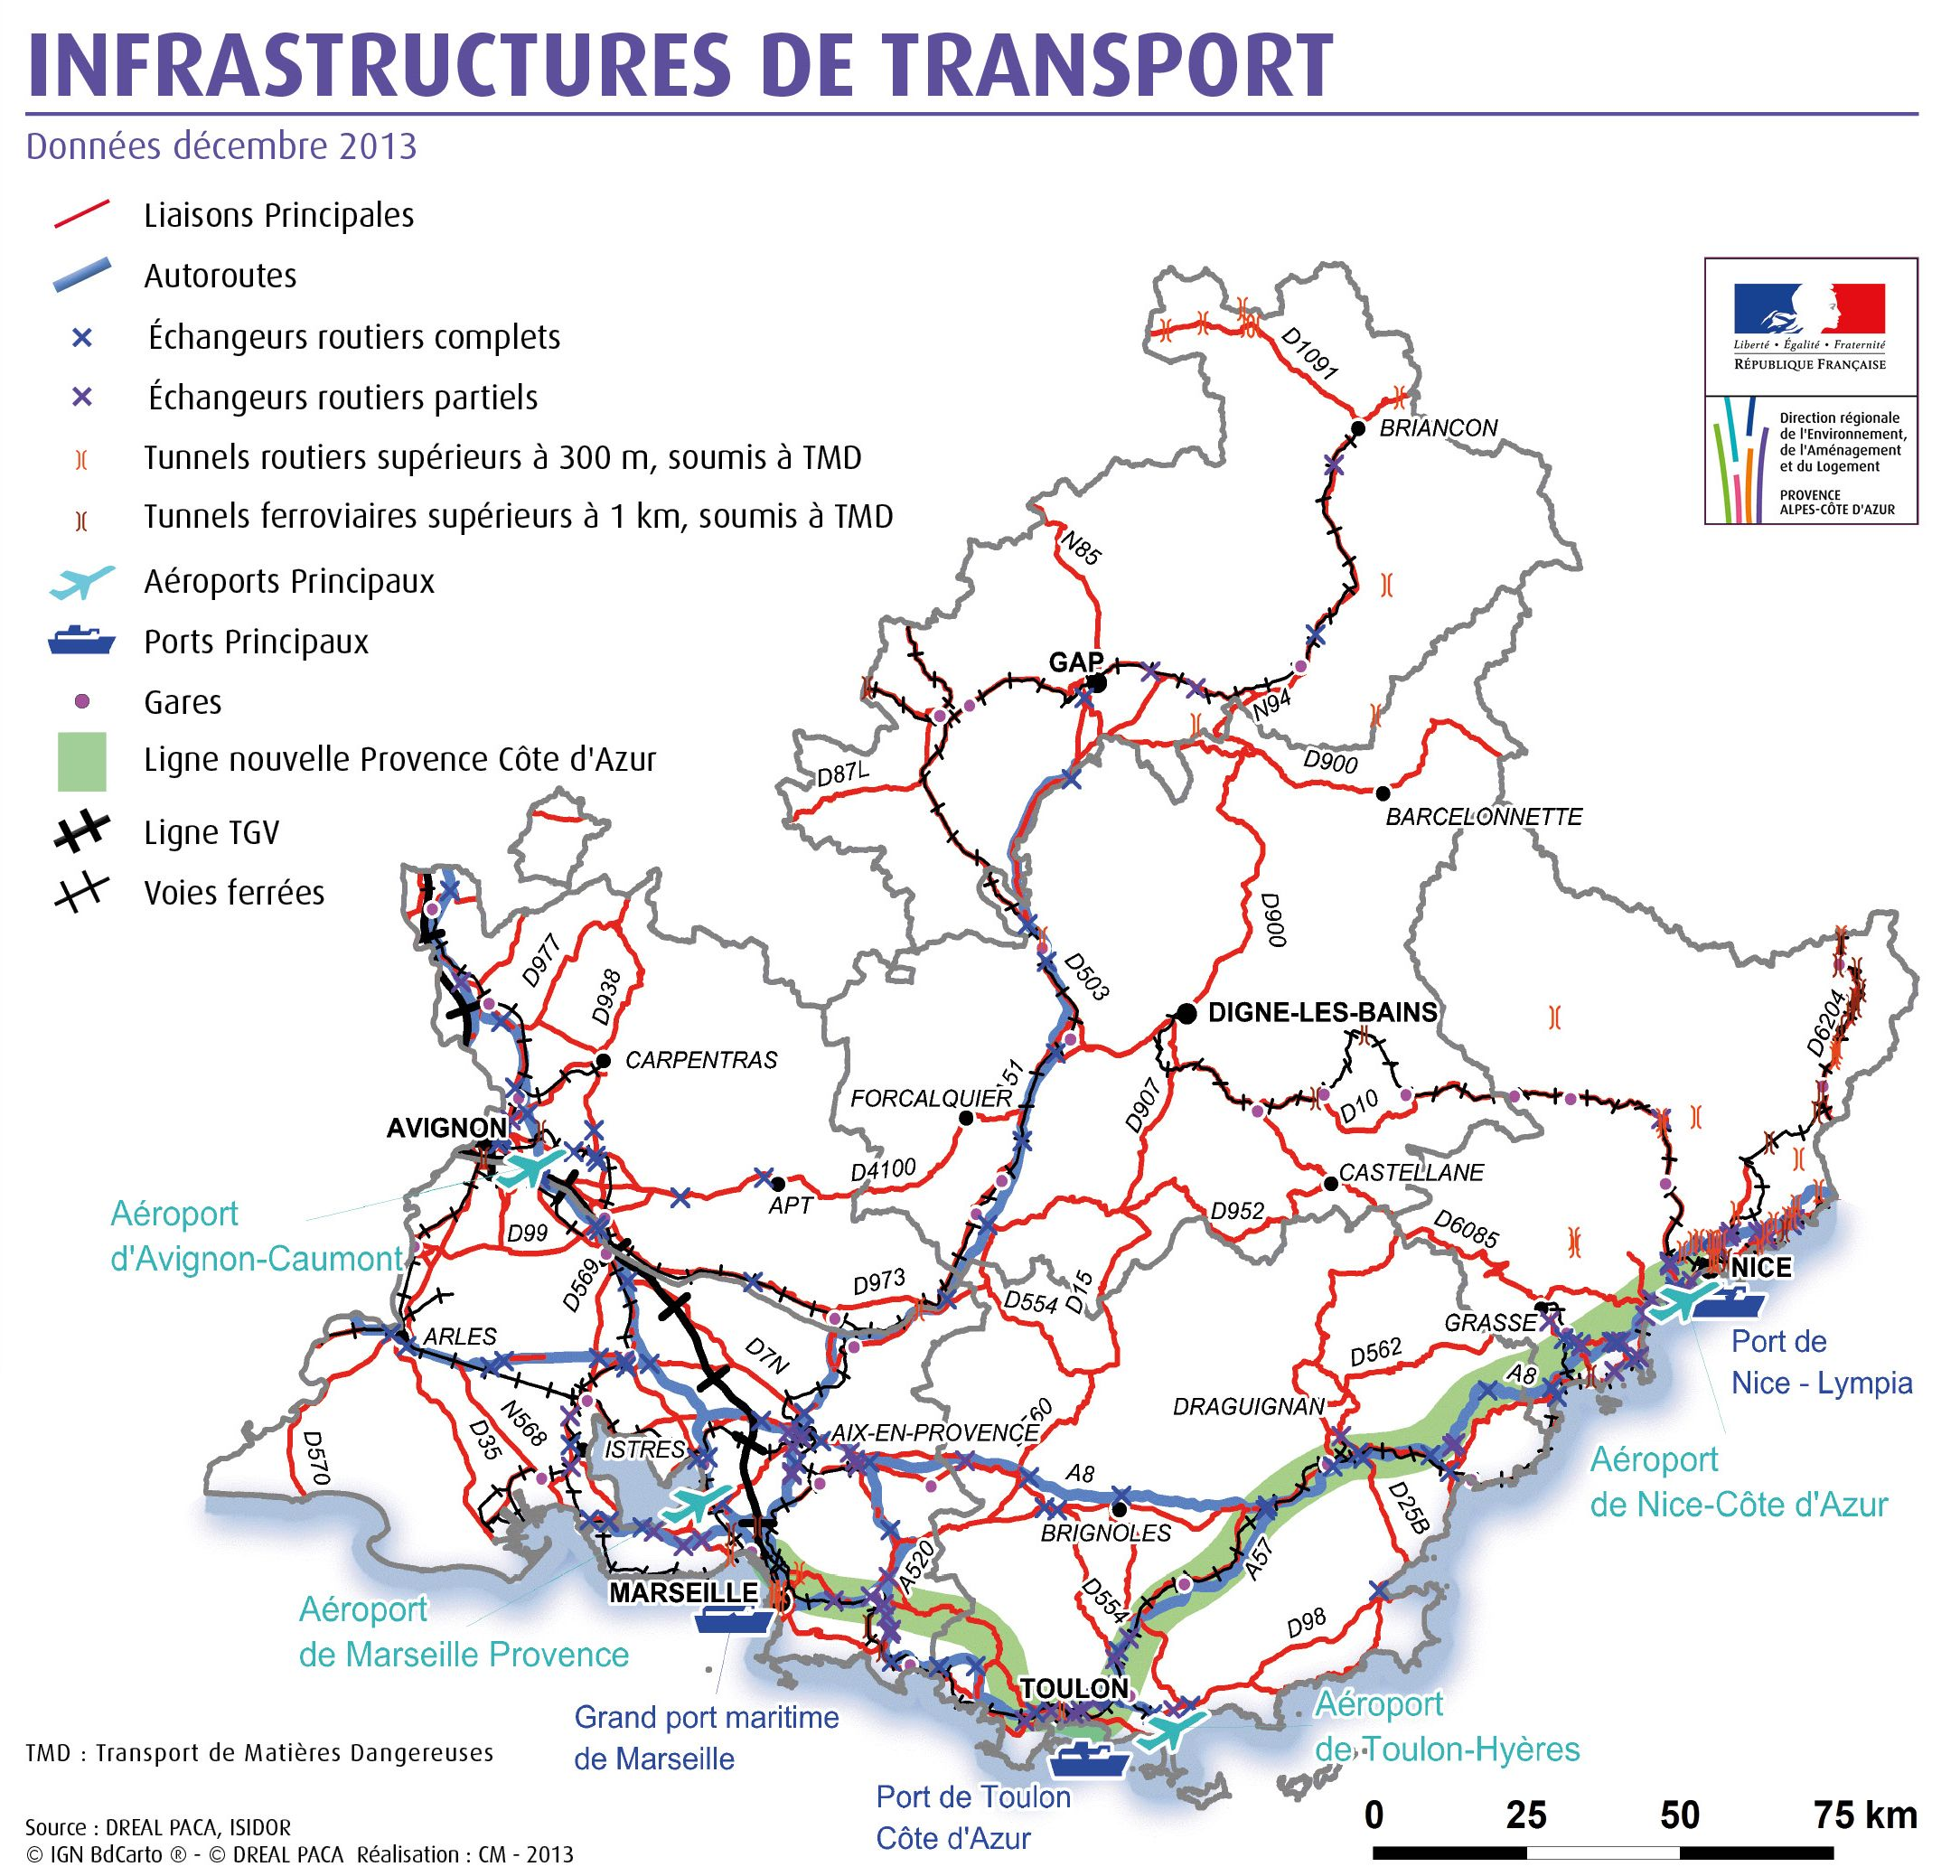 infrastructures de transport